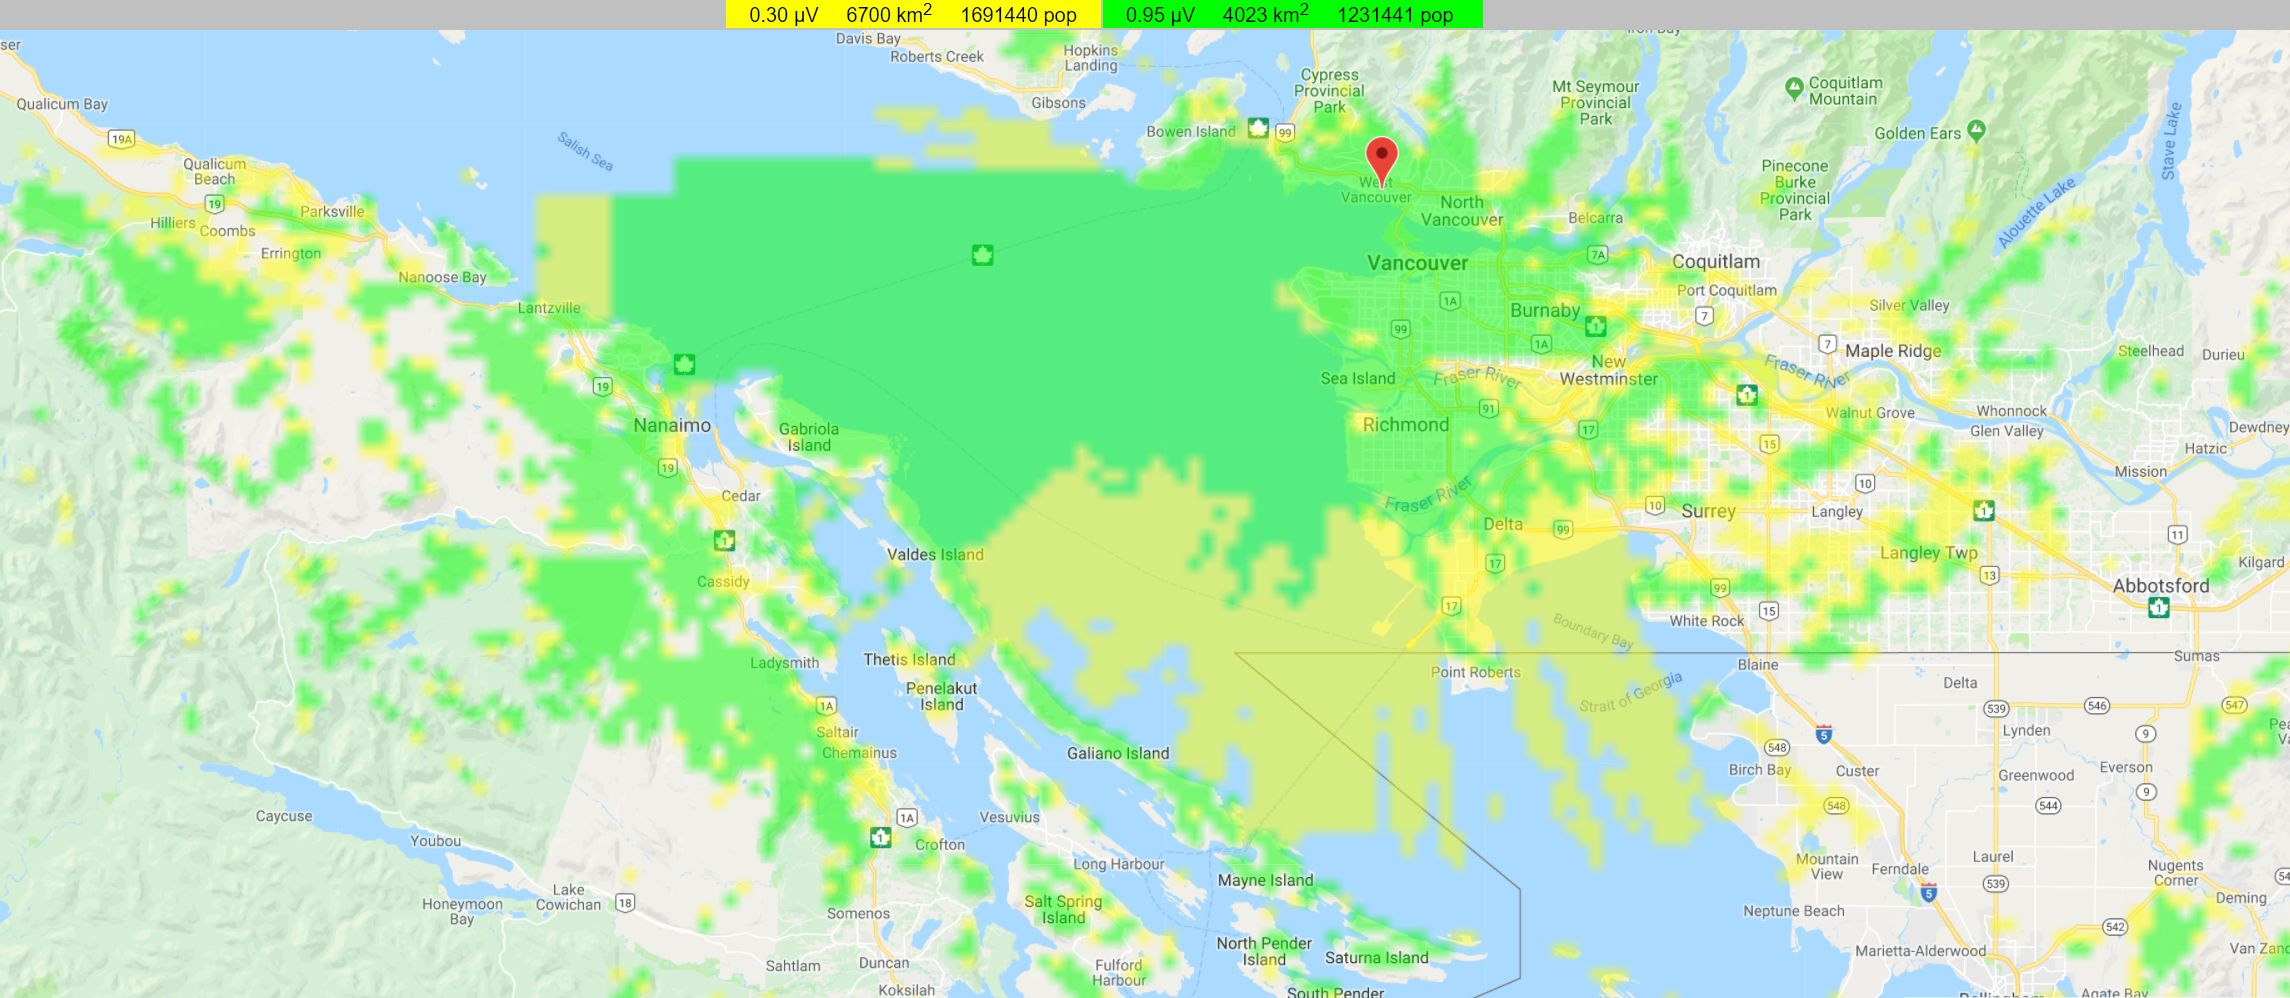 PNW - Pacific Northwest DMR - Repeater Listing Page Gmrs Repeater Map on aprs repeater map, people-mover map, ft harrison mt map, florida industry map, florida repeater map, coverage map, grand central highway map, ham radio map, radio repeater map, 2 meter repeater map,